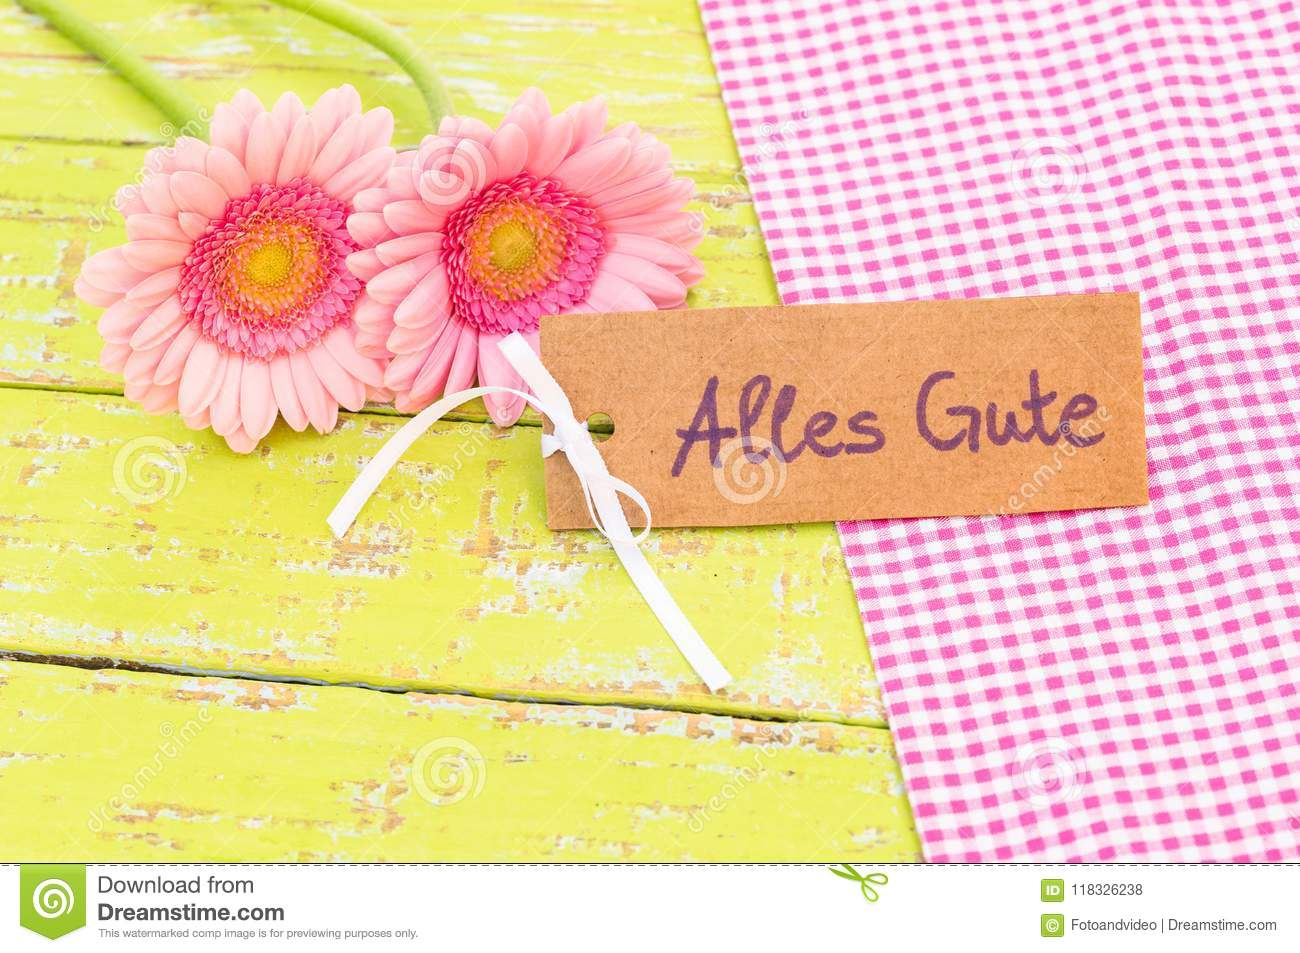 Pink Flowers And Card With German Text, Alles Gute, Means Best